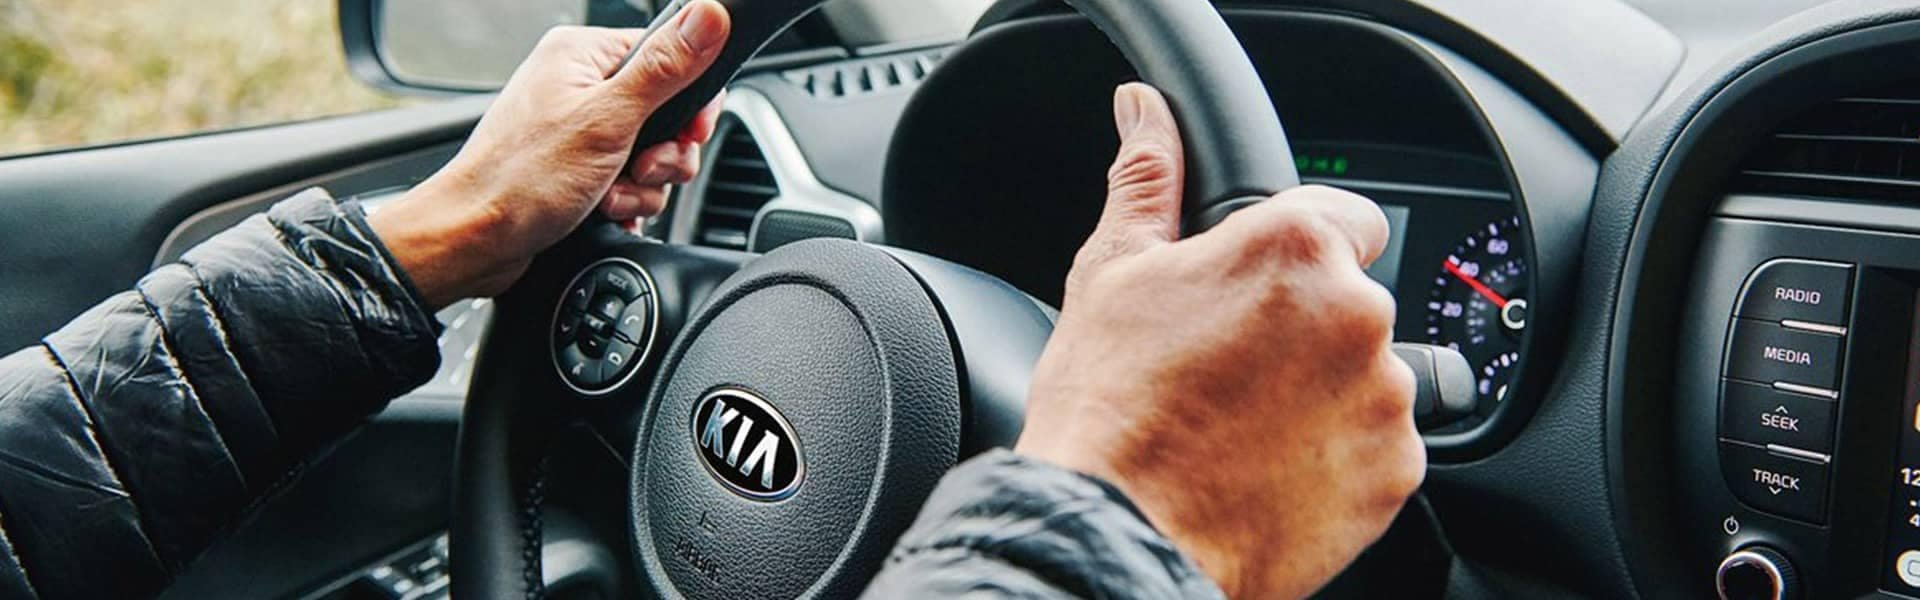 Hands on 2020 Kia Soul Steering Wheel